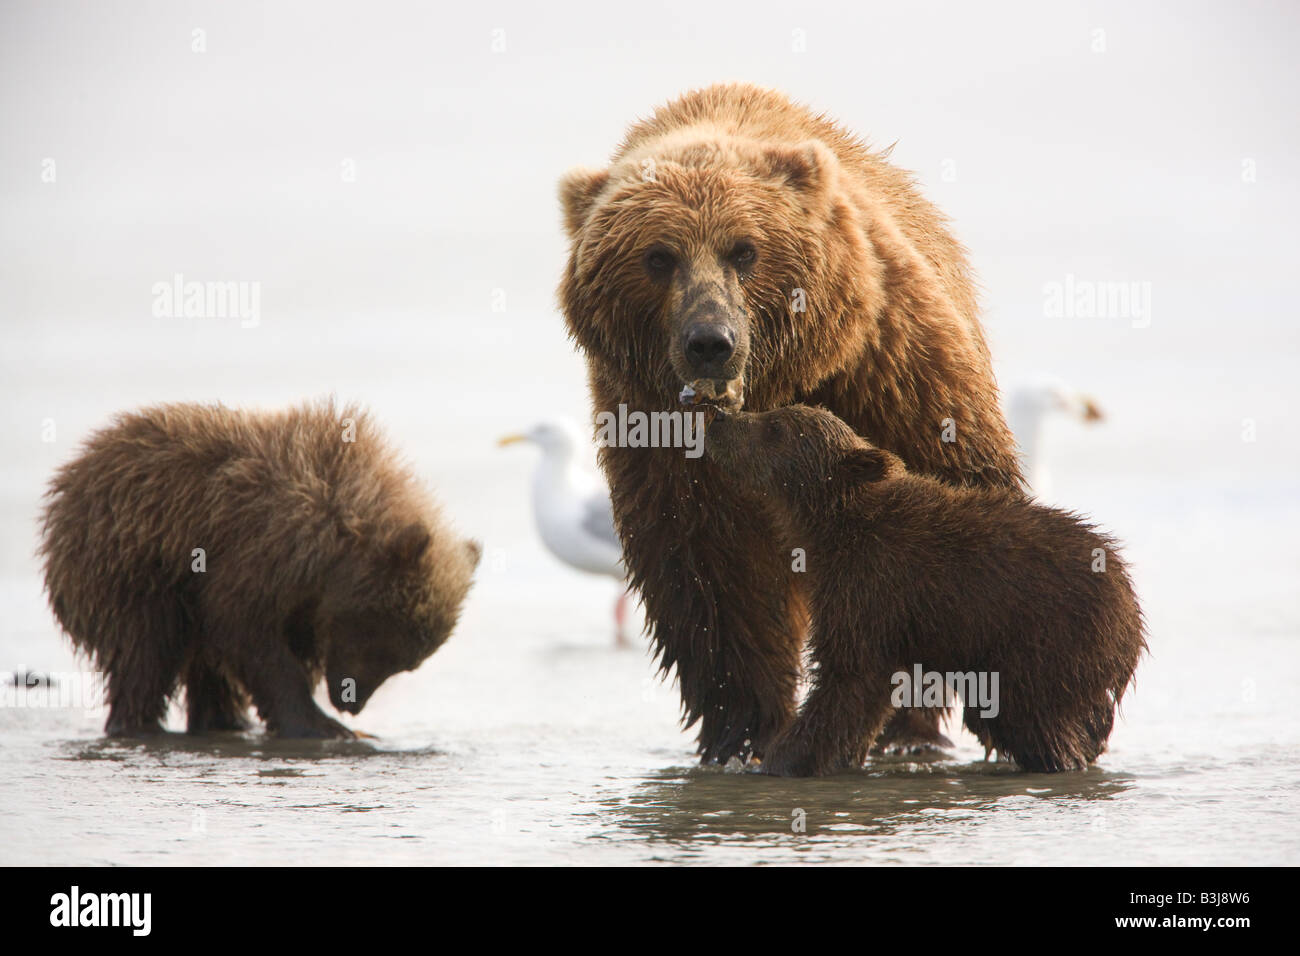 A Grizzly Bear sow with cubs Lake Clark National Park Alaska Stock Photo